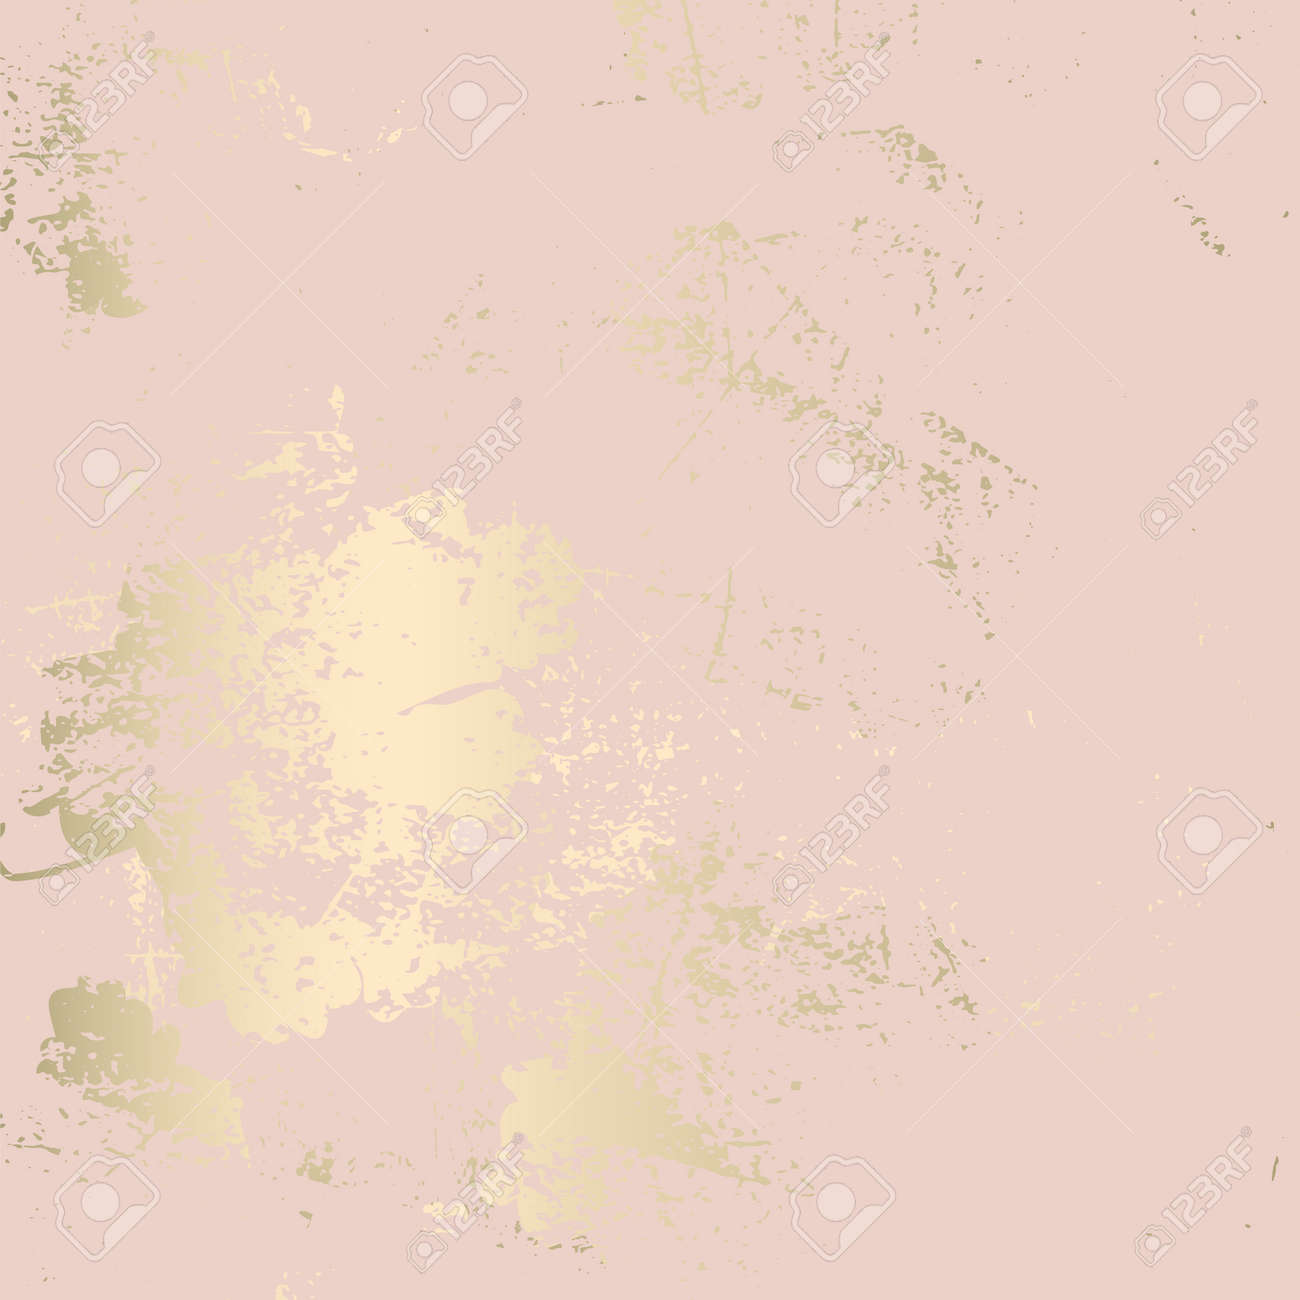 Chic blush pink gold trendy marble grunge texture with floral ornament. Elegant background for advertising, interior design, fashion, textile, wedding, etc - 122716172